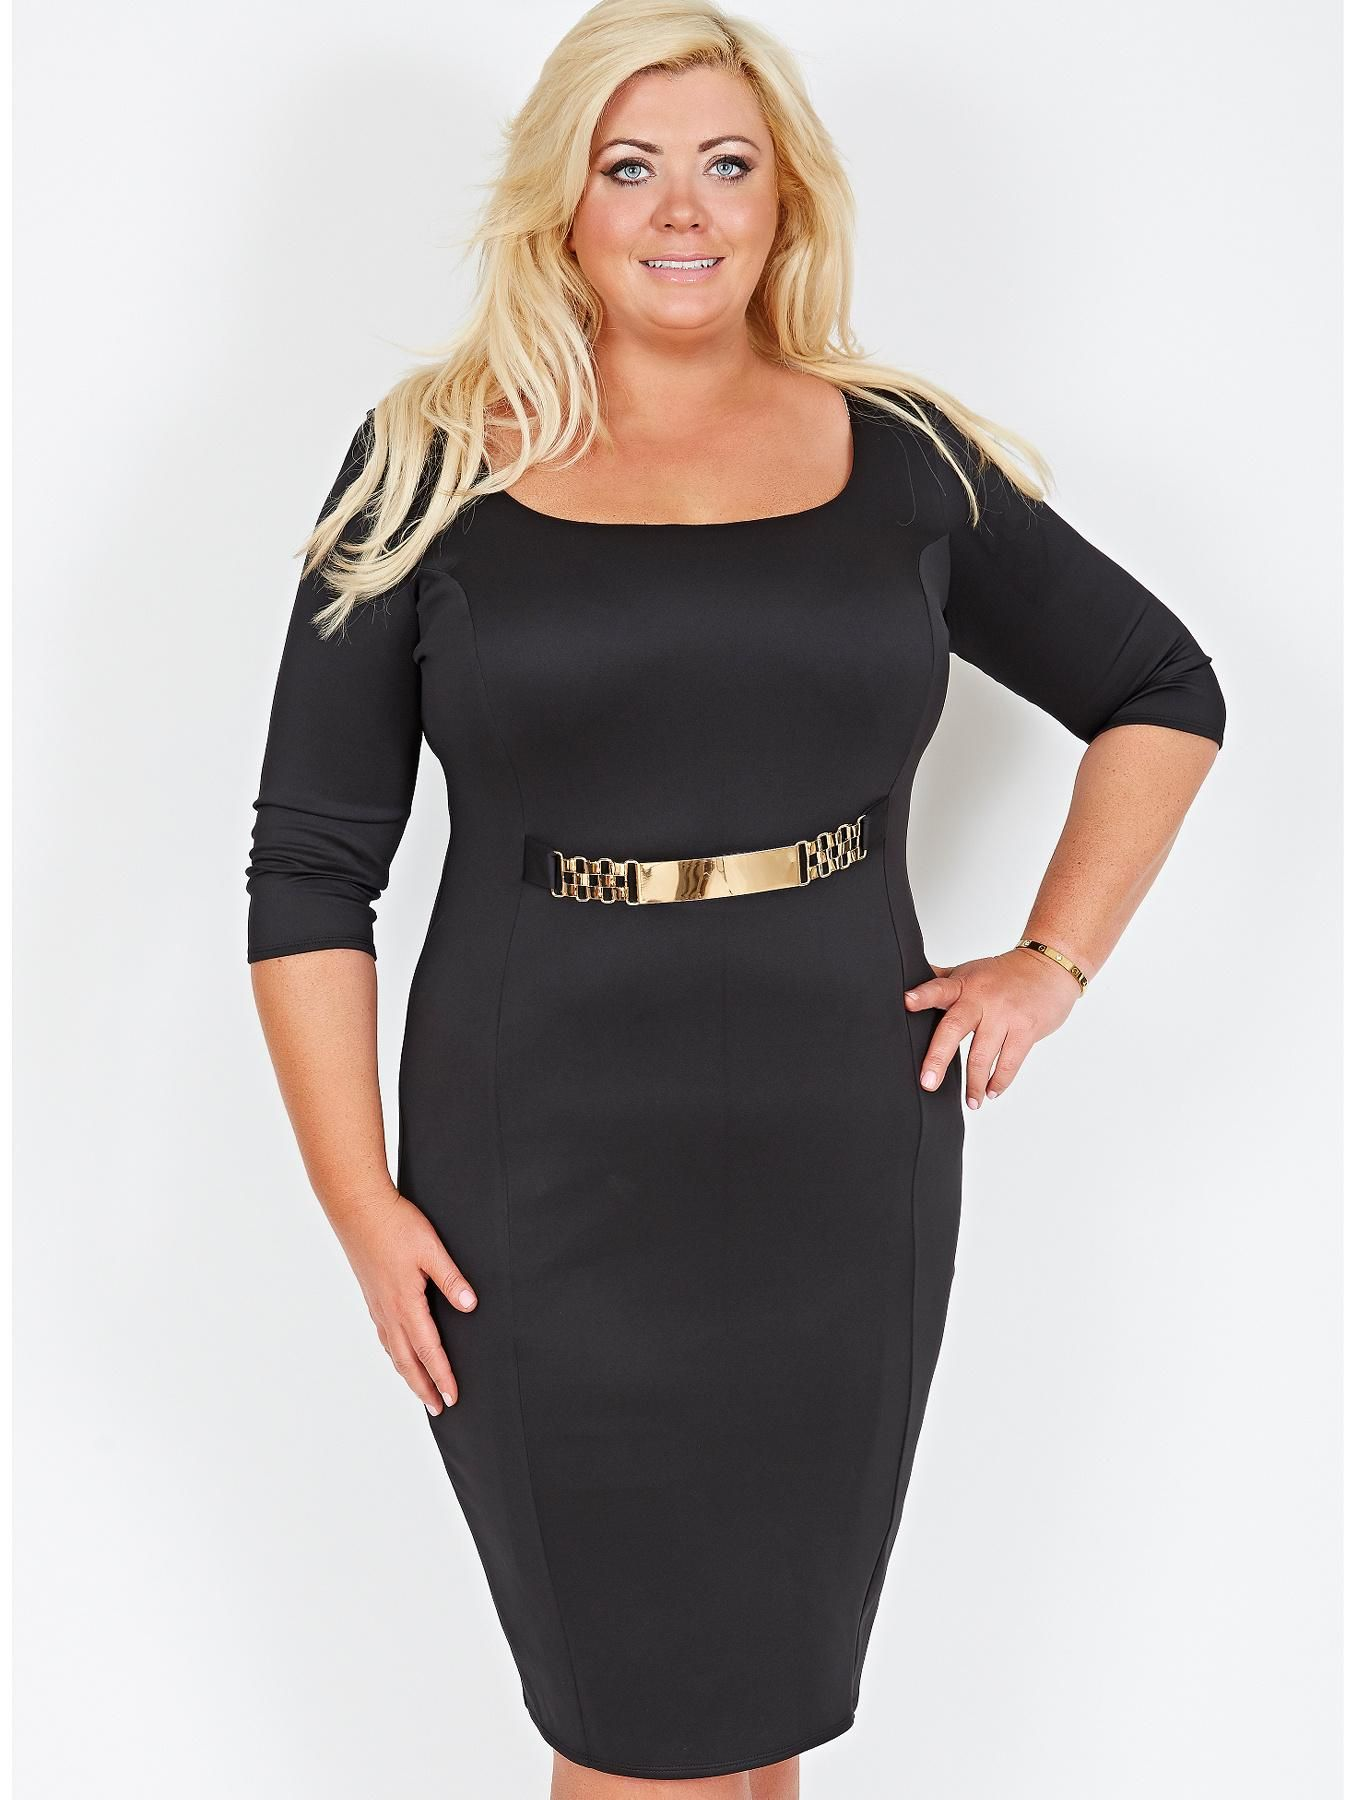 6b3f17957c7 Gemma Collins Corsica Black Dress Size 22 Gold Belt New with tags ...